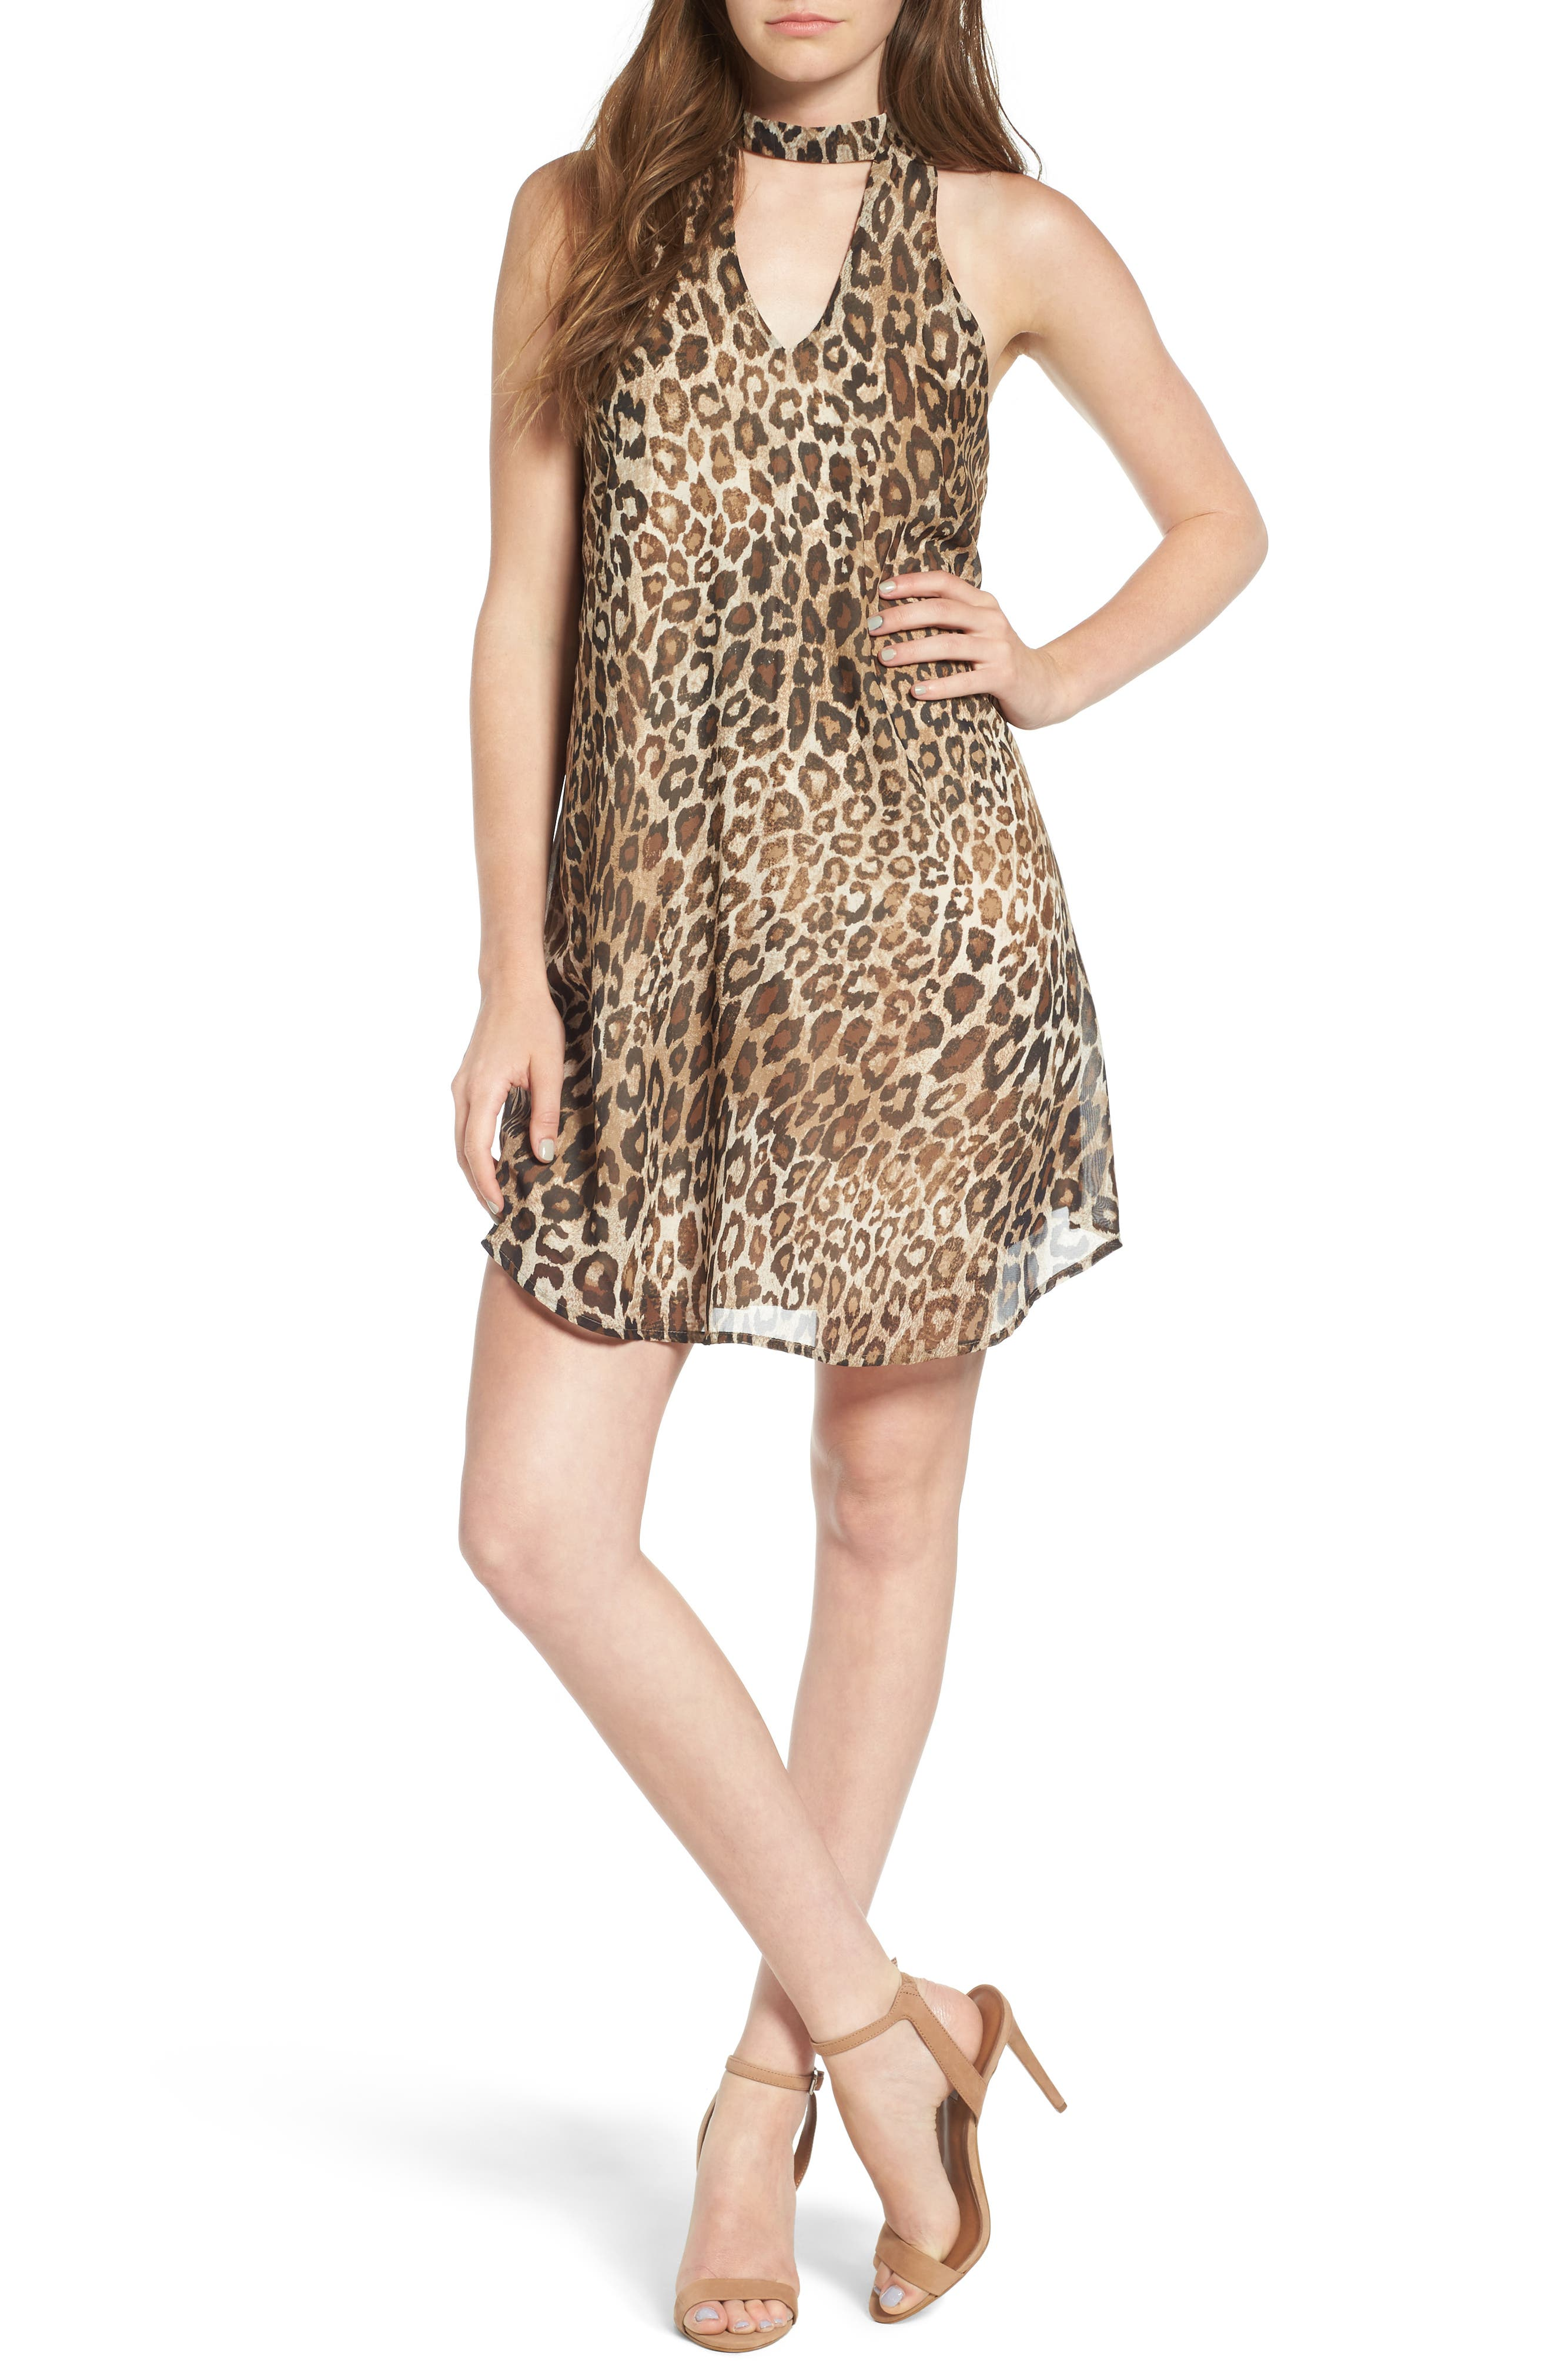 Speechless Leopard Print Cutout Dress